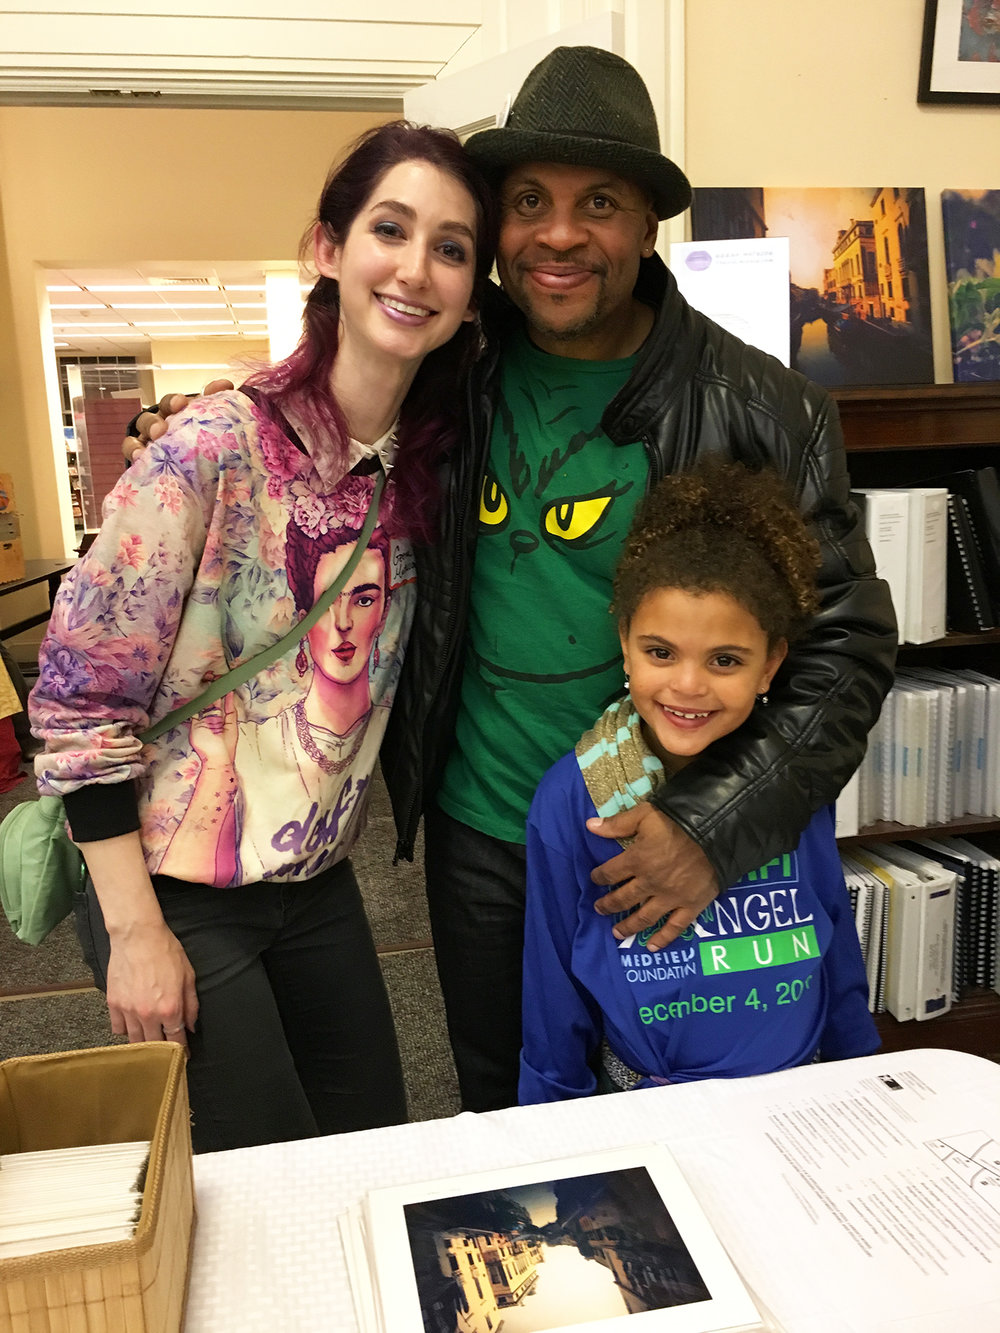 Geena Matuson (@geenamatuson) with Medfield Afterschool Program Director, Artist Kurt Jackson and daughter Jordan at the 2016 Holiday Stroll.